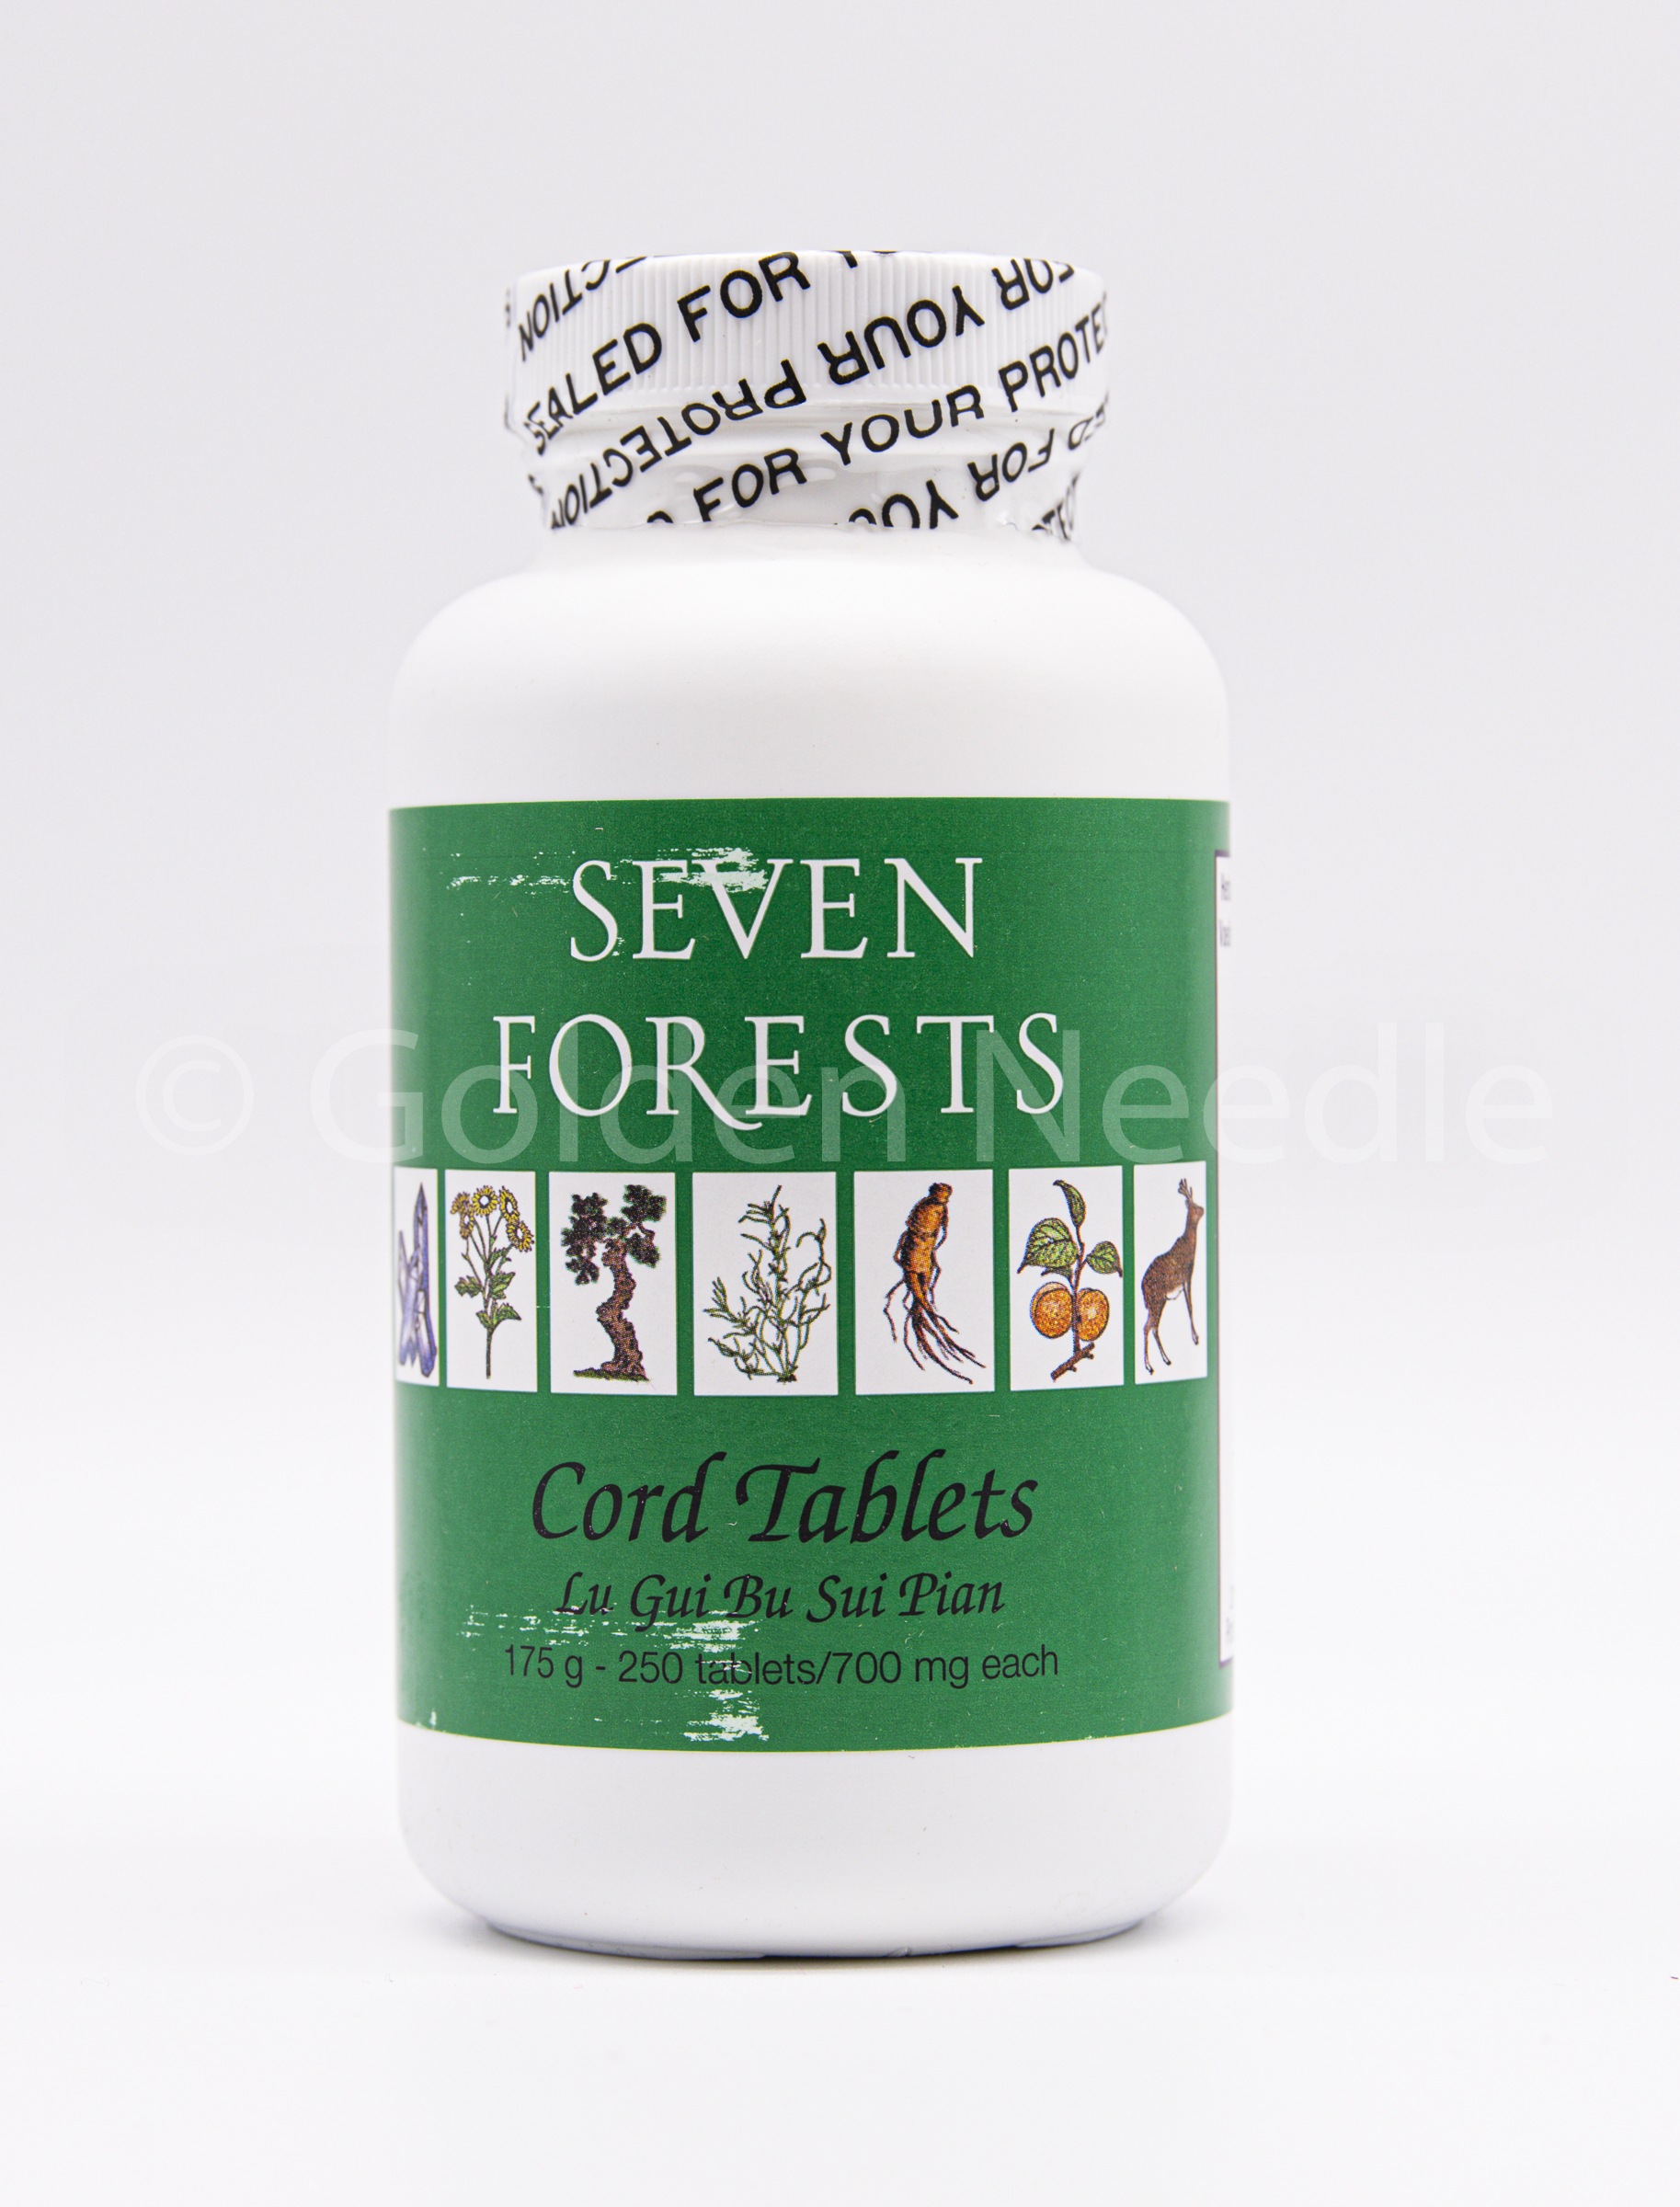 Cord Tablets, 250 tablets